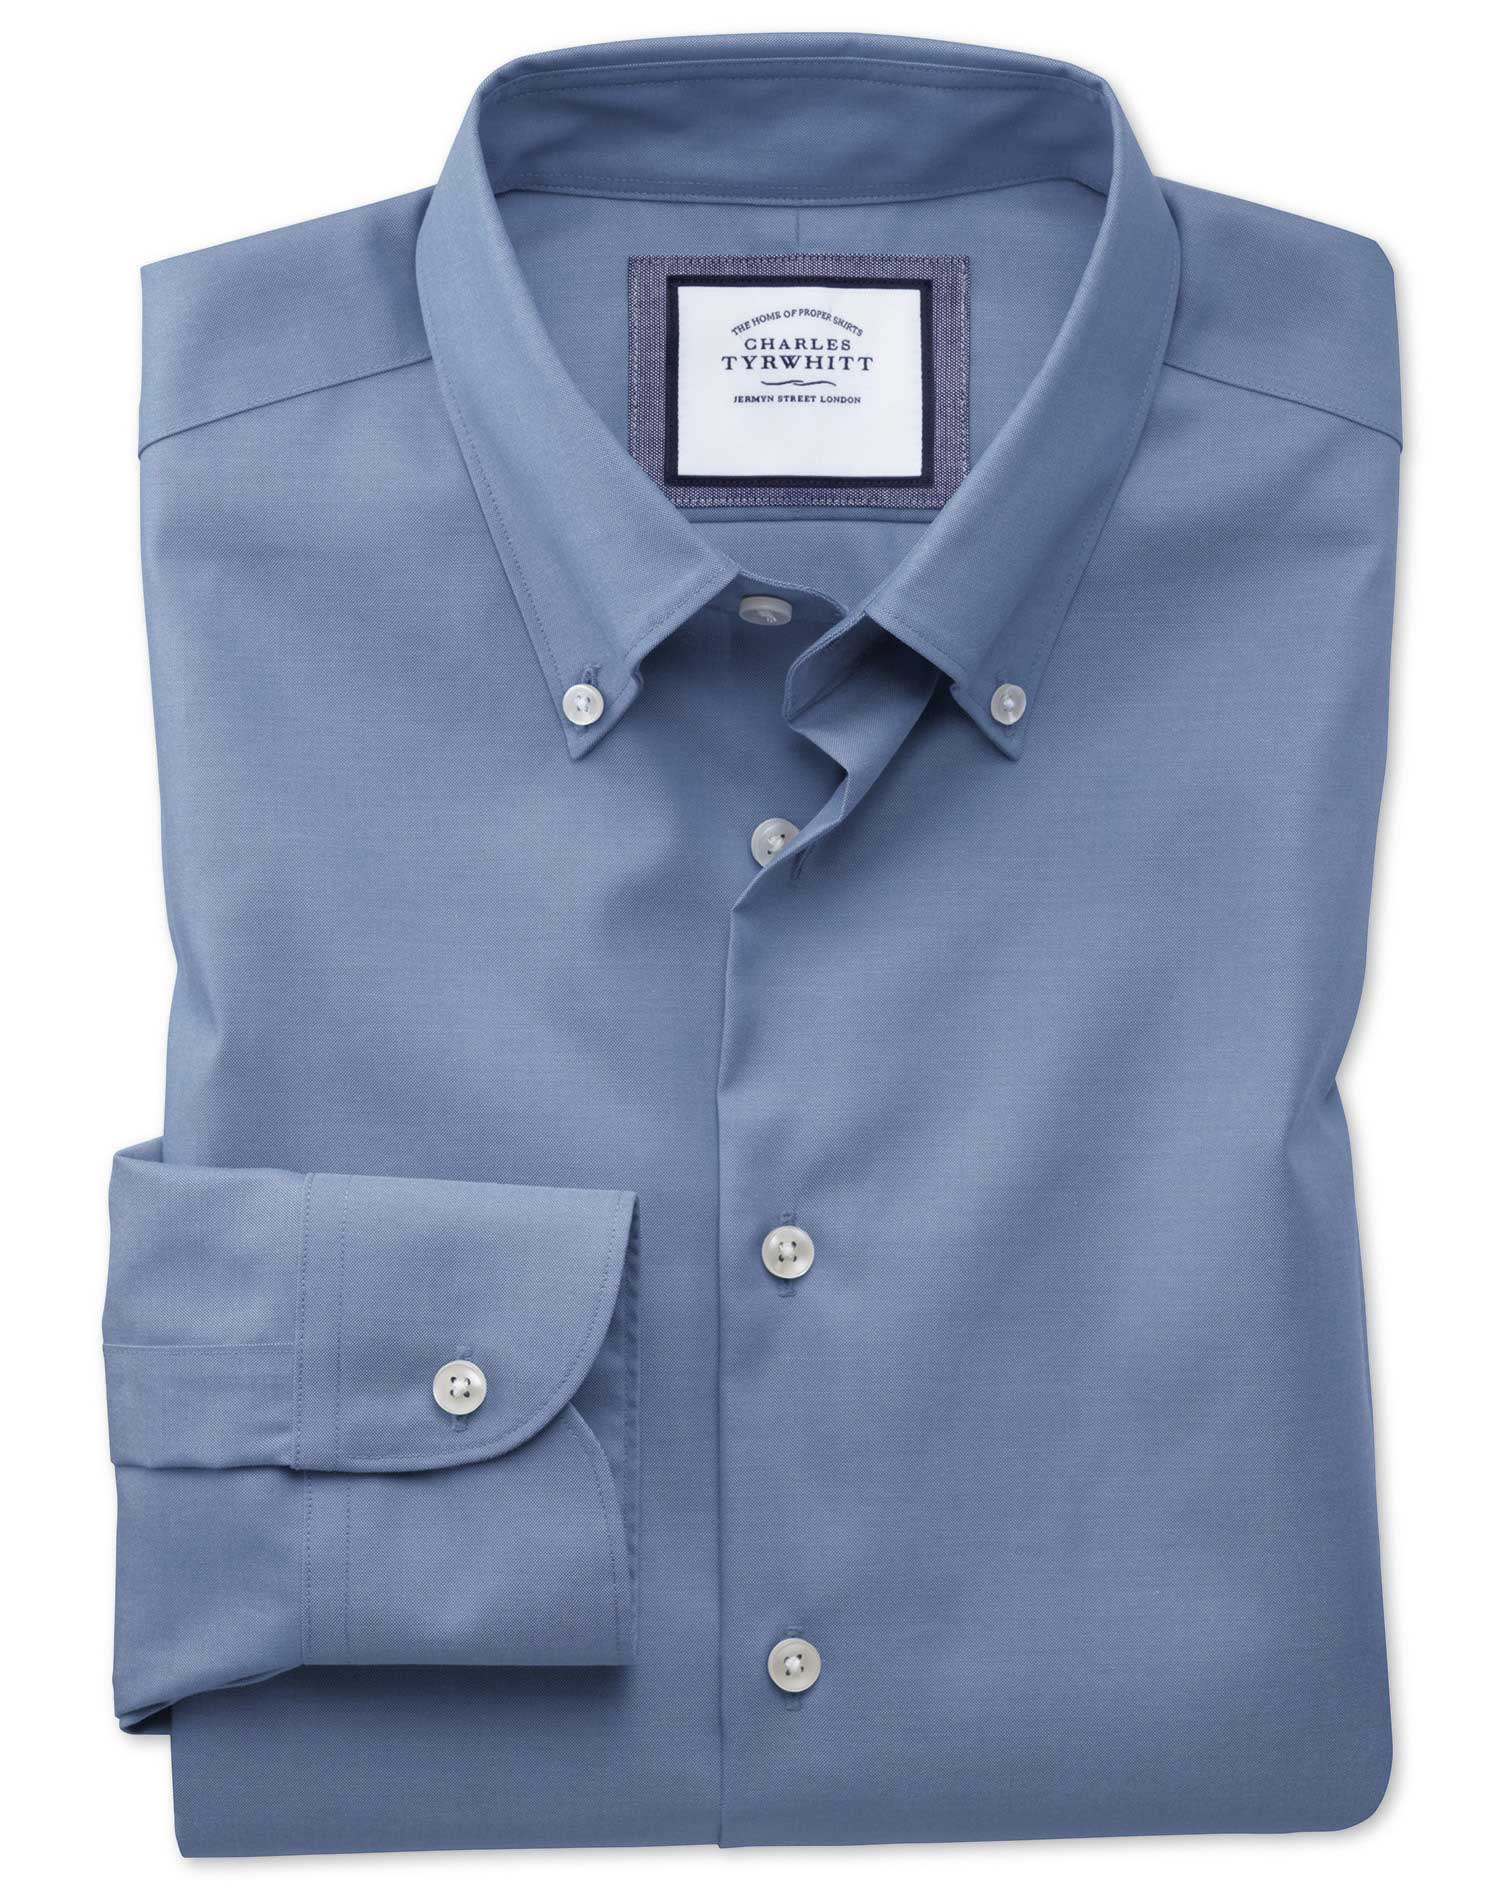 Classic Fit Button-Down Business Casual Non-Iron Mid Blue Cotton Formal Shirt Single Cuff Size 18/36